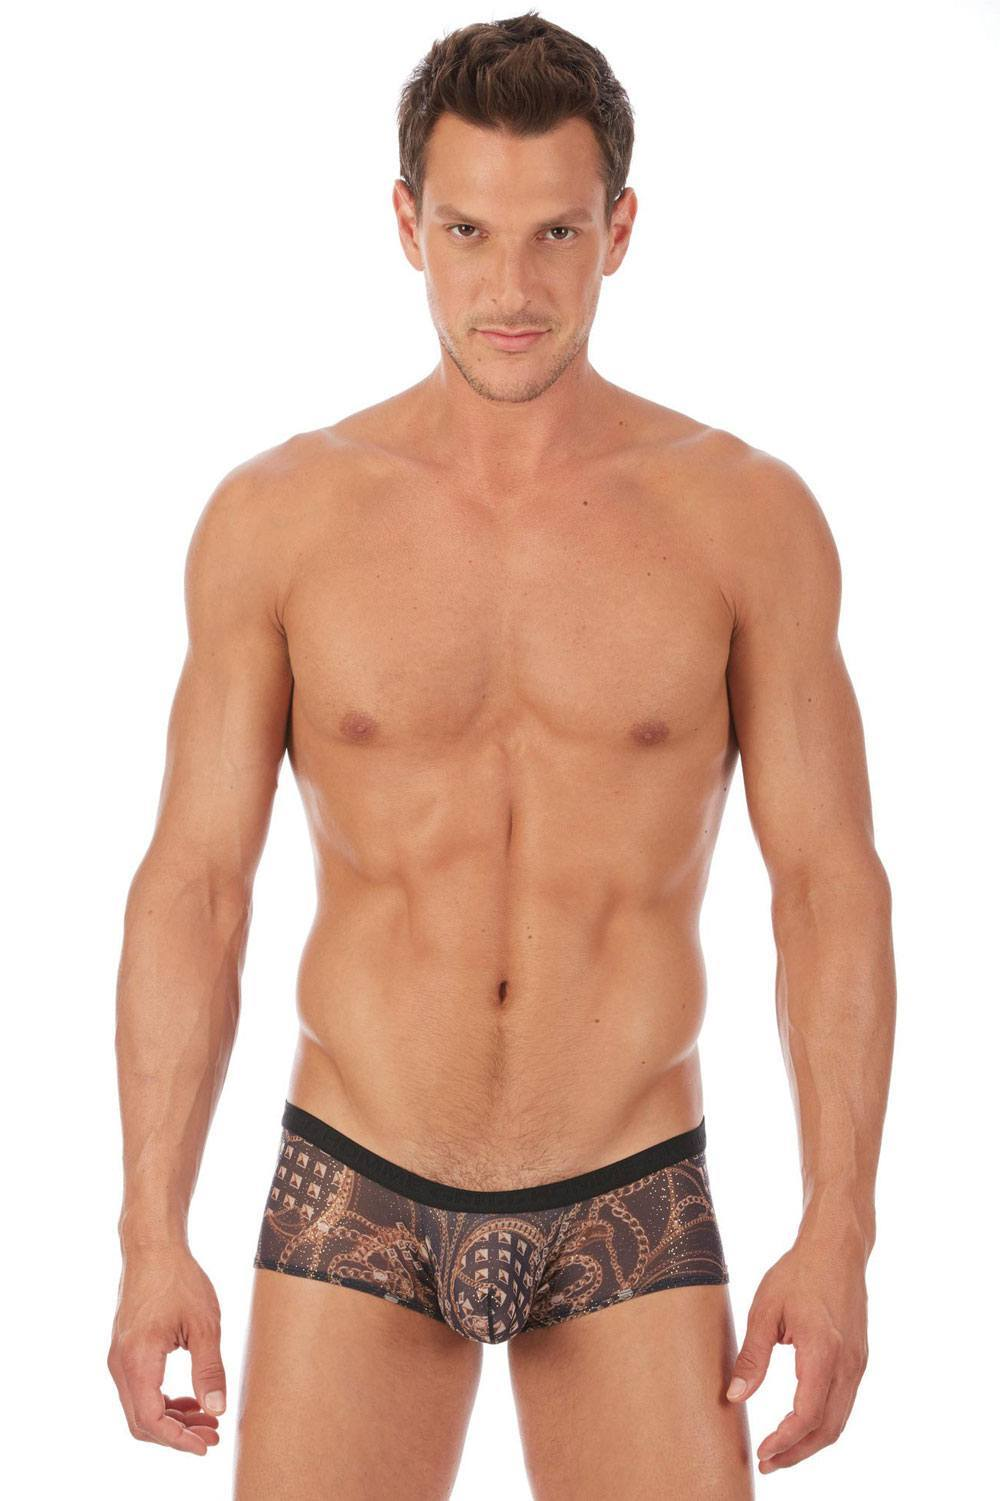 Boxer noir pour homme Nero - Boxer Homme/Boxers en microfibres - Maxim'Hom See more. Lingerie for men Sexy Lingerie Hommes sexy Shorts with tights Hot Pants Boxers HERRIN Trousers Latex. Black Level Lack Herren Pants, schwarz, M, 1 Stück Find this Pin and more on Boxer homme .